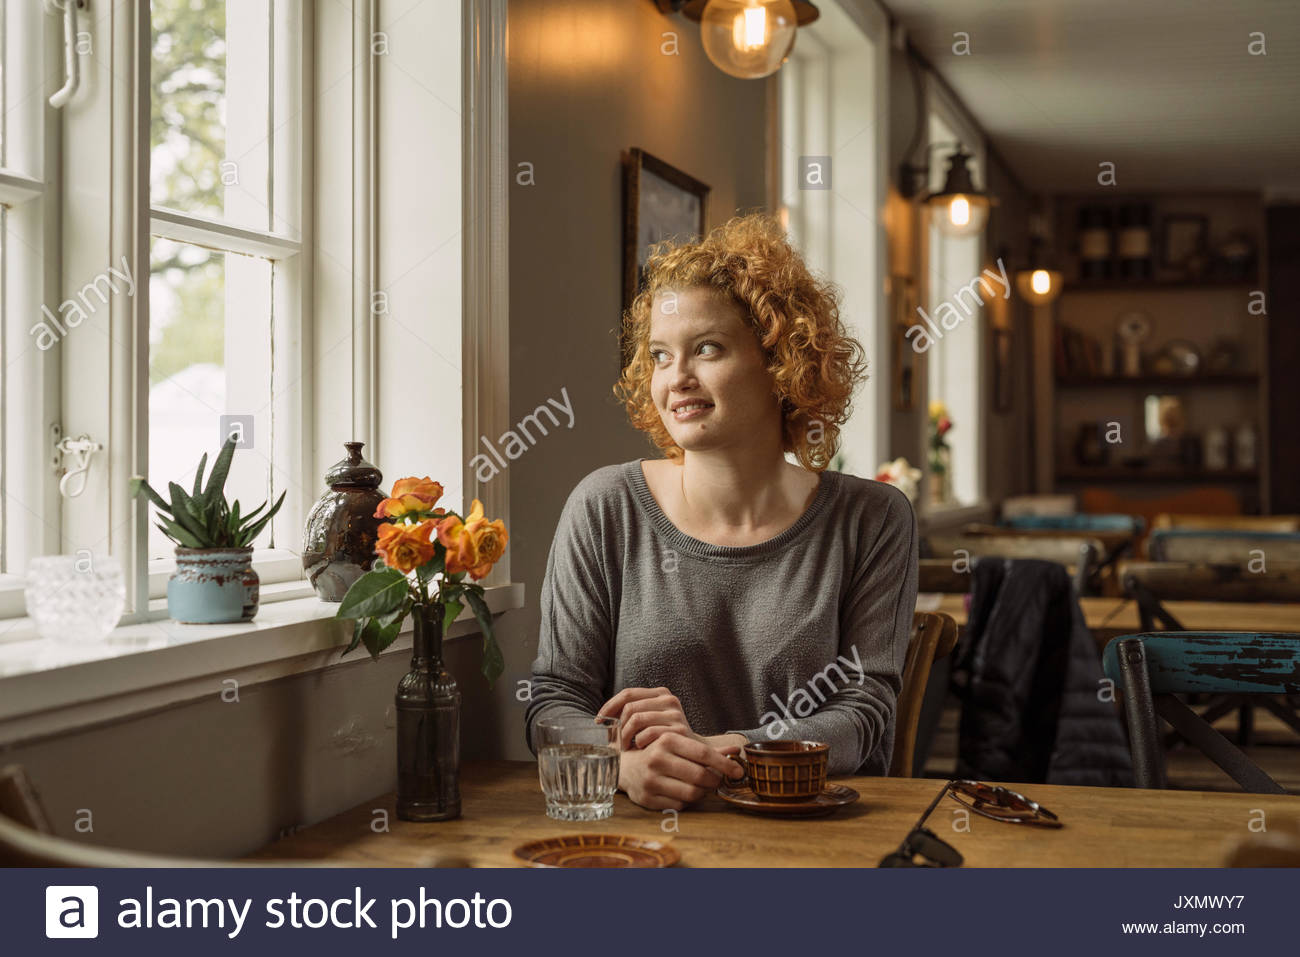 Woman in cafe looking away out of window smiling - Stock Image